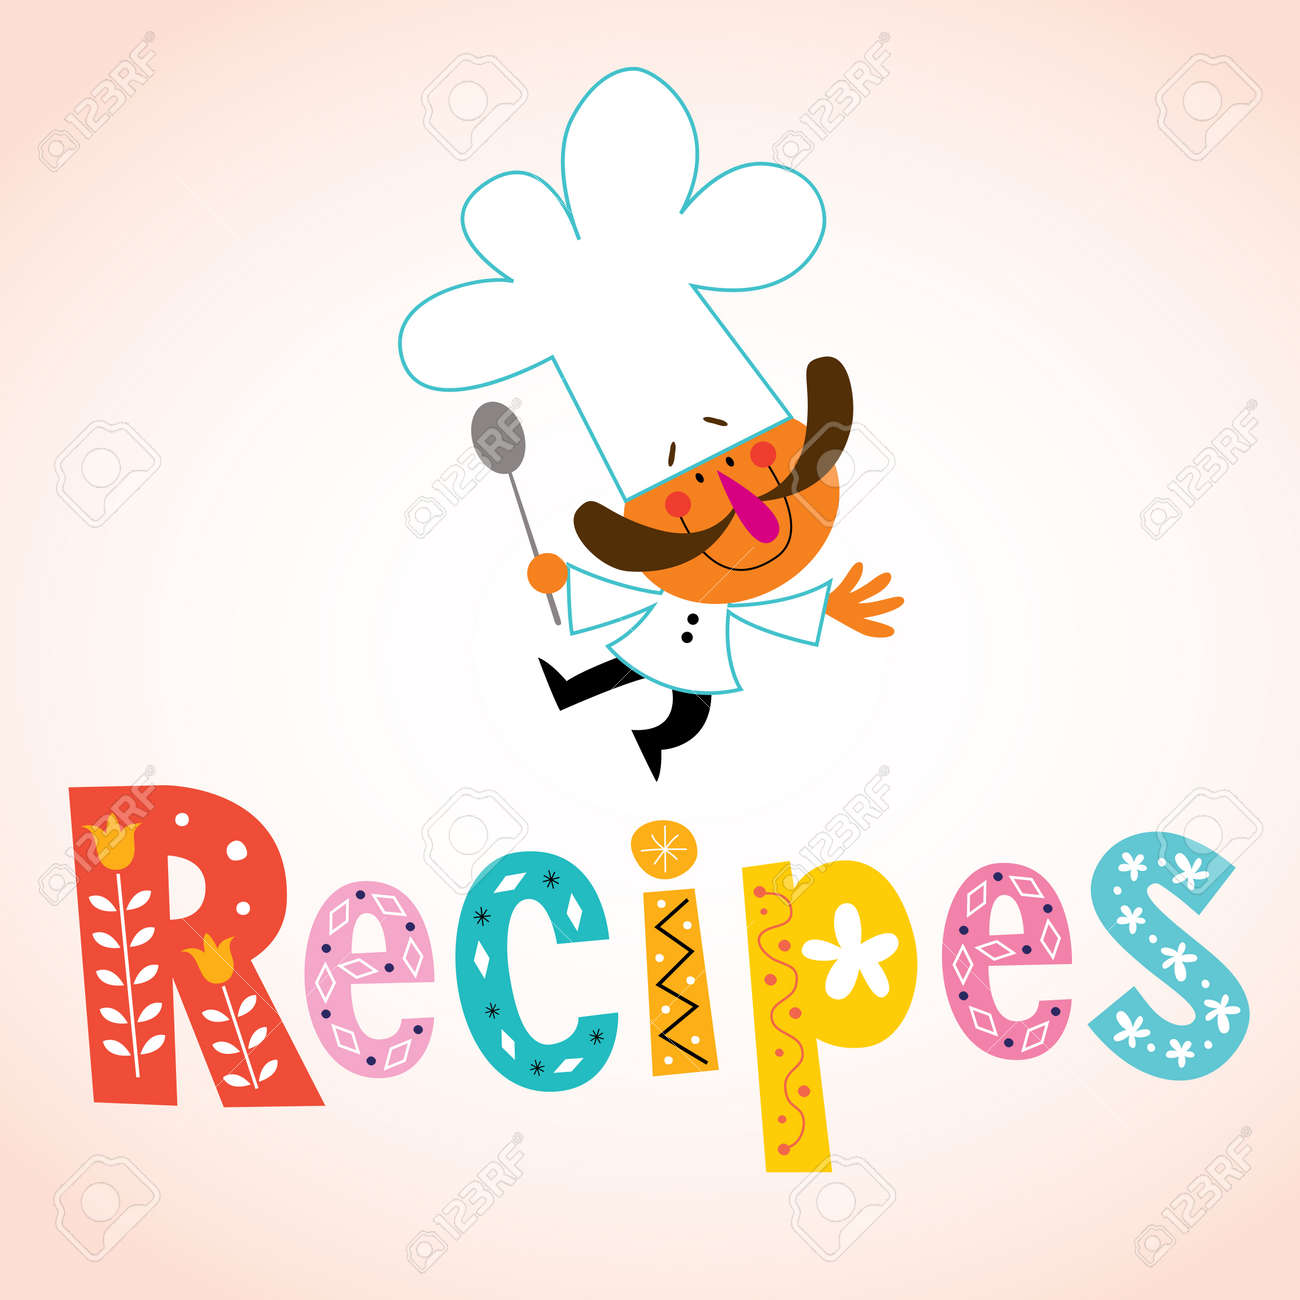 Recipes decorative lettering with chef character